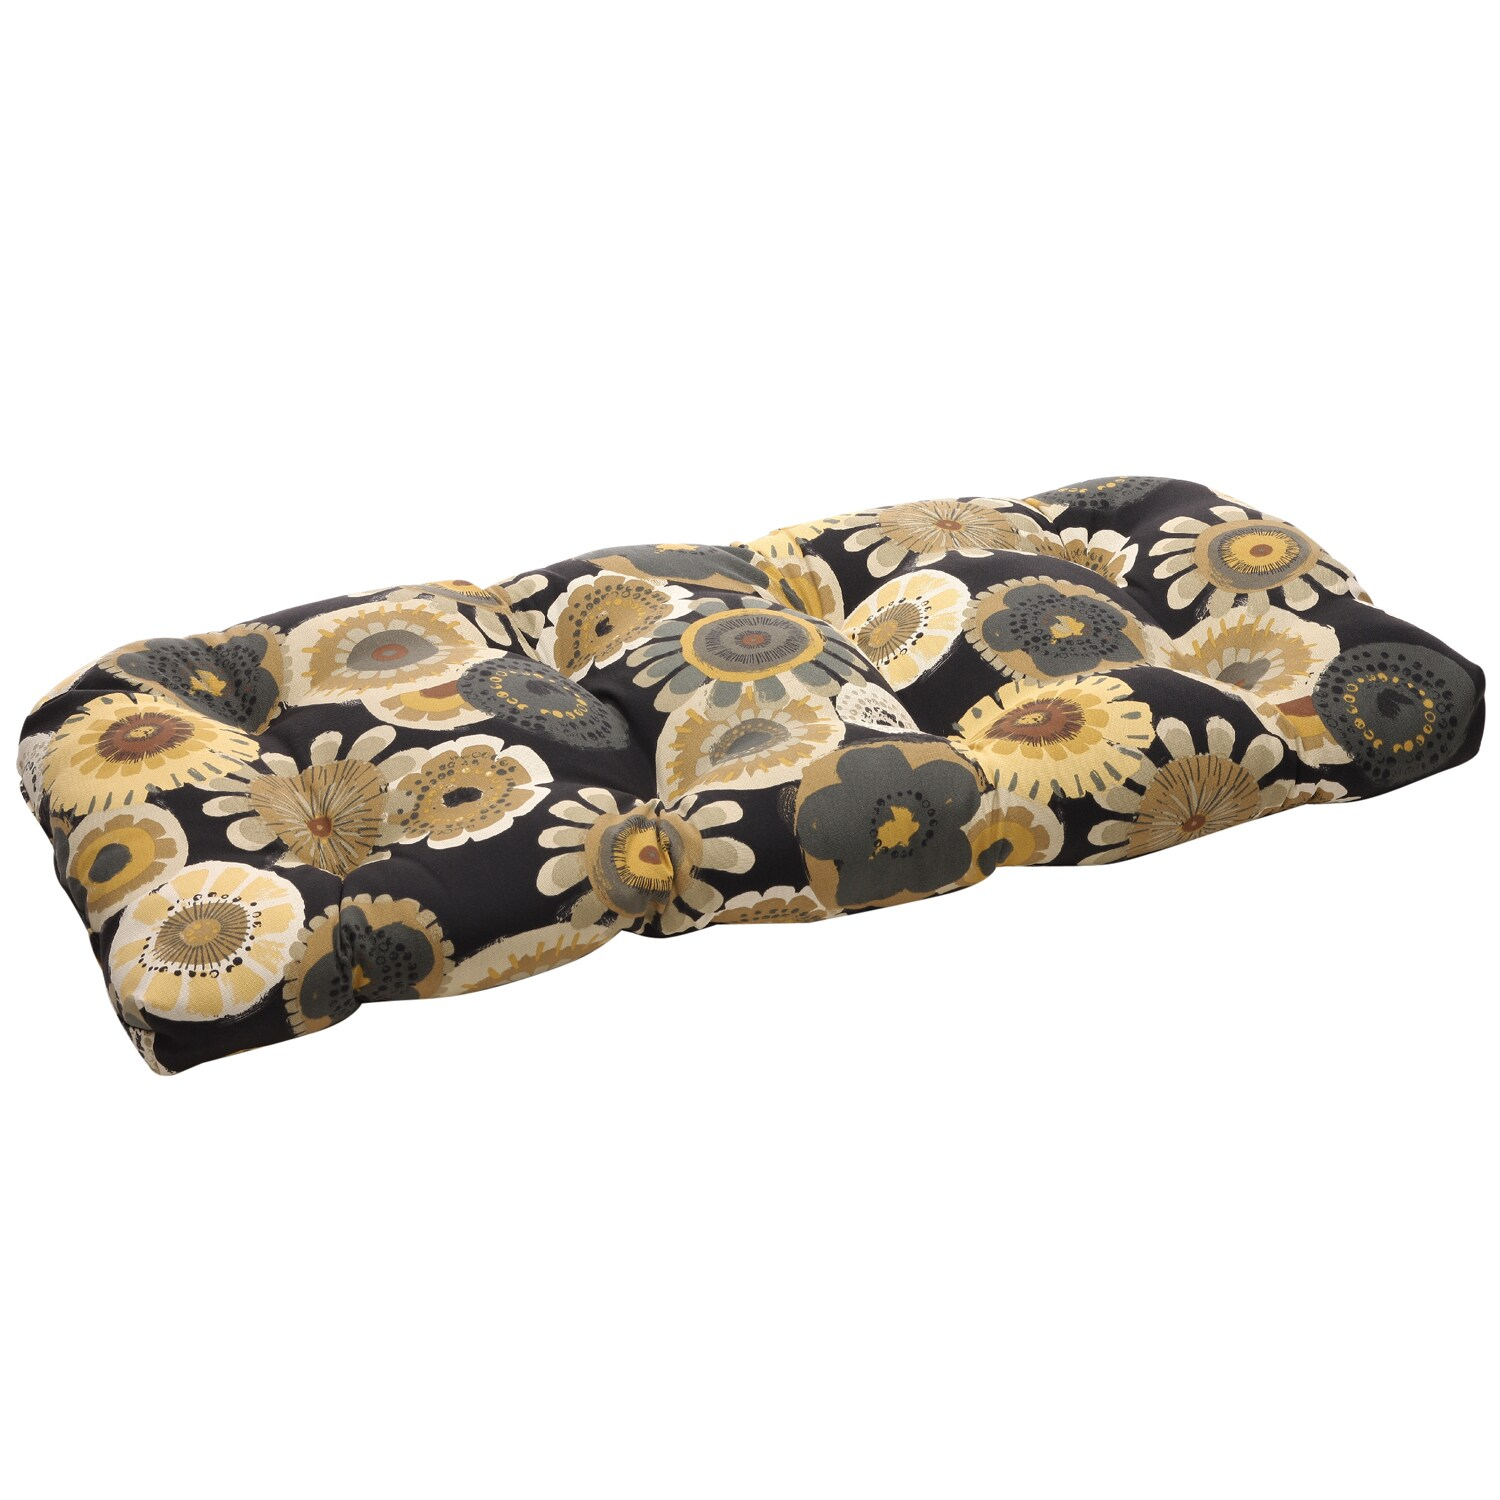 Pillow Perfect Black/ Yellow Floral Tufted Outdoor Wicker Loveseat Cushion